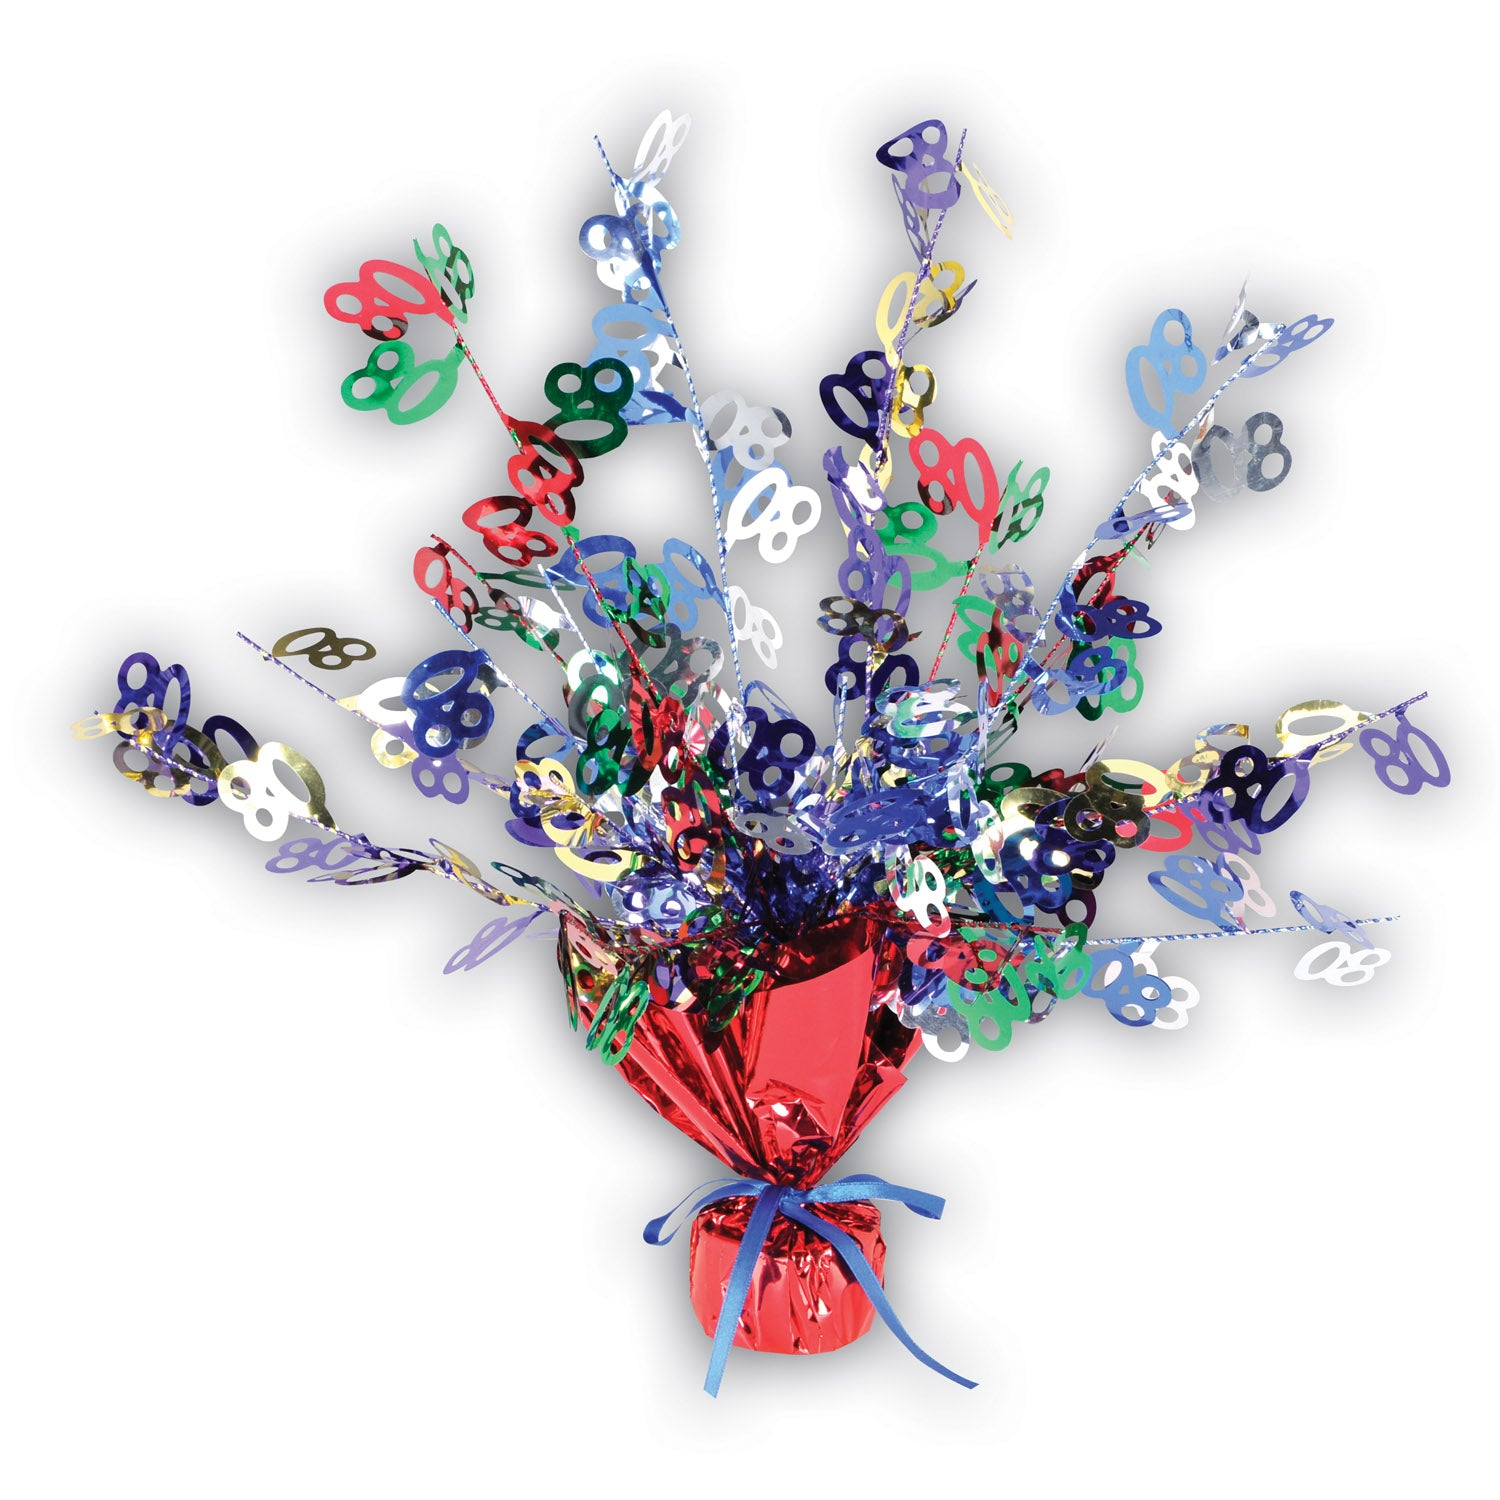 80 Gleam 'N Burst Centerpiece by Beistle - 80th Birthday Party Decorations